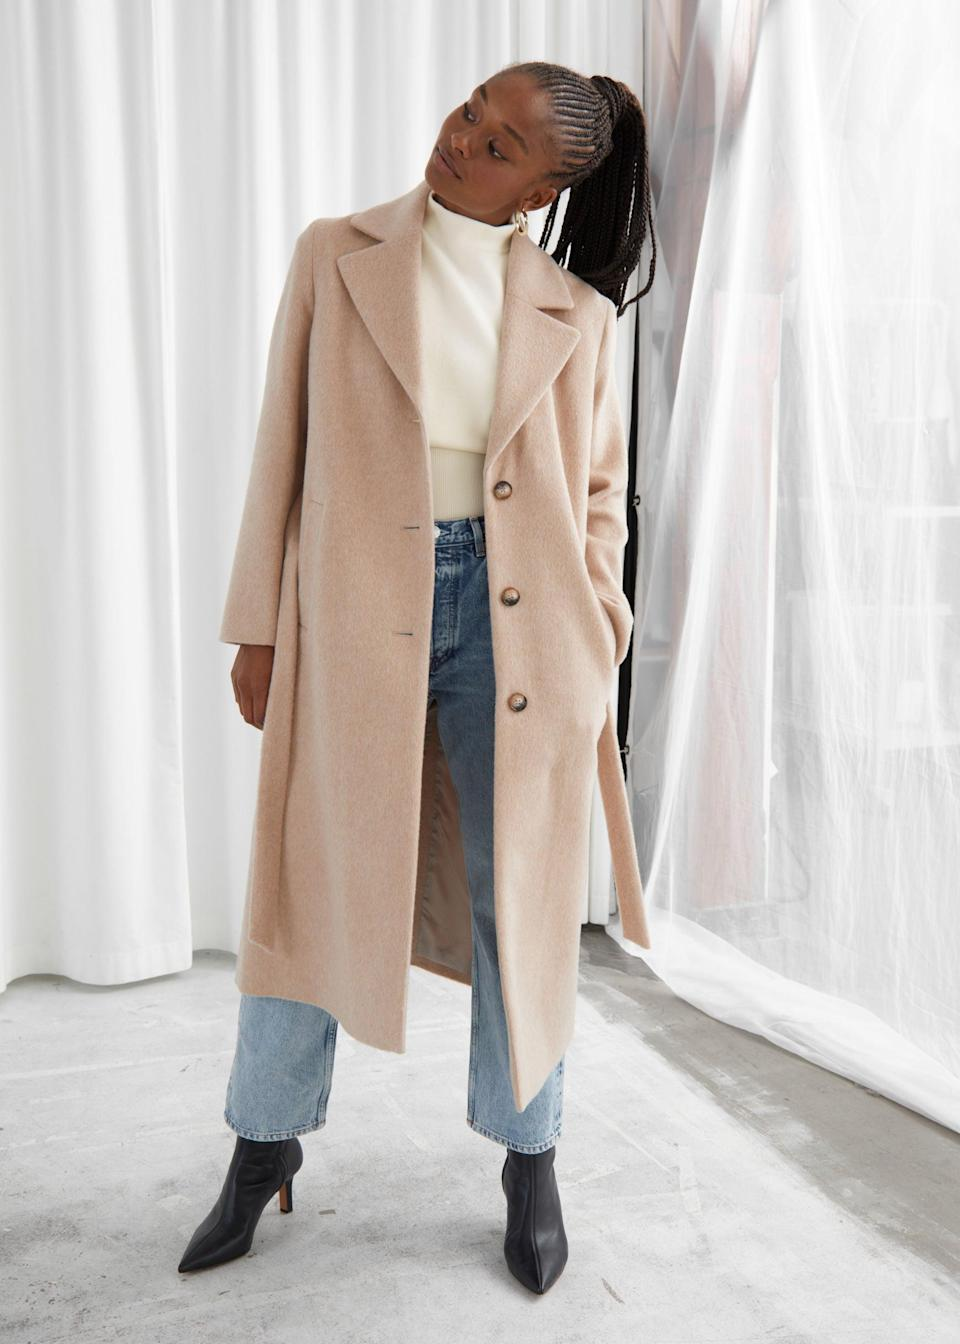 "<br><br><strong>& Other Stories</strong> Oversized Alpaca Blend Coat, $, available at <a href=""https://go.skimresources.com/?id=30283X879131&url=https%3A%2F%2Fwww.stories.com%2Fen_usd%2Fclothing%2Fjackets-coats%2Fwoolcoats%2Fproduct.oversized-alpaca-blend-coat-beige.0298475001.html"" rel=""nofollow noopener"" target=""_blank"" data-ylk=""slk:& Other Stories"" class=""link rapid-noclick-resp"">& Other Stories</a>"